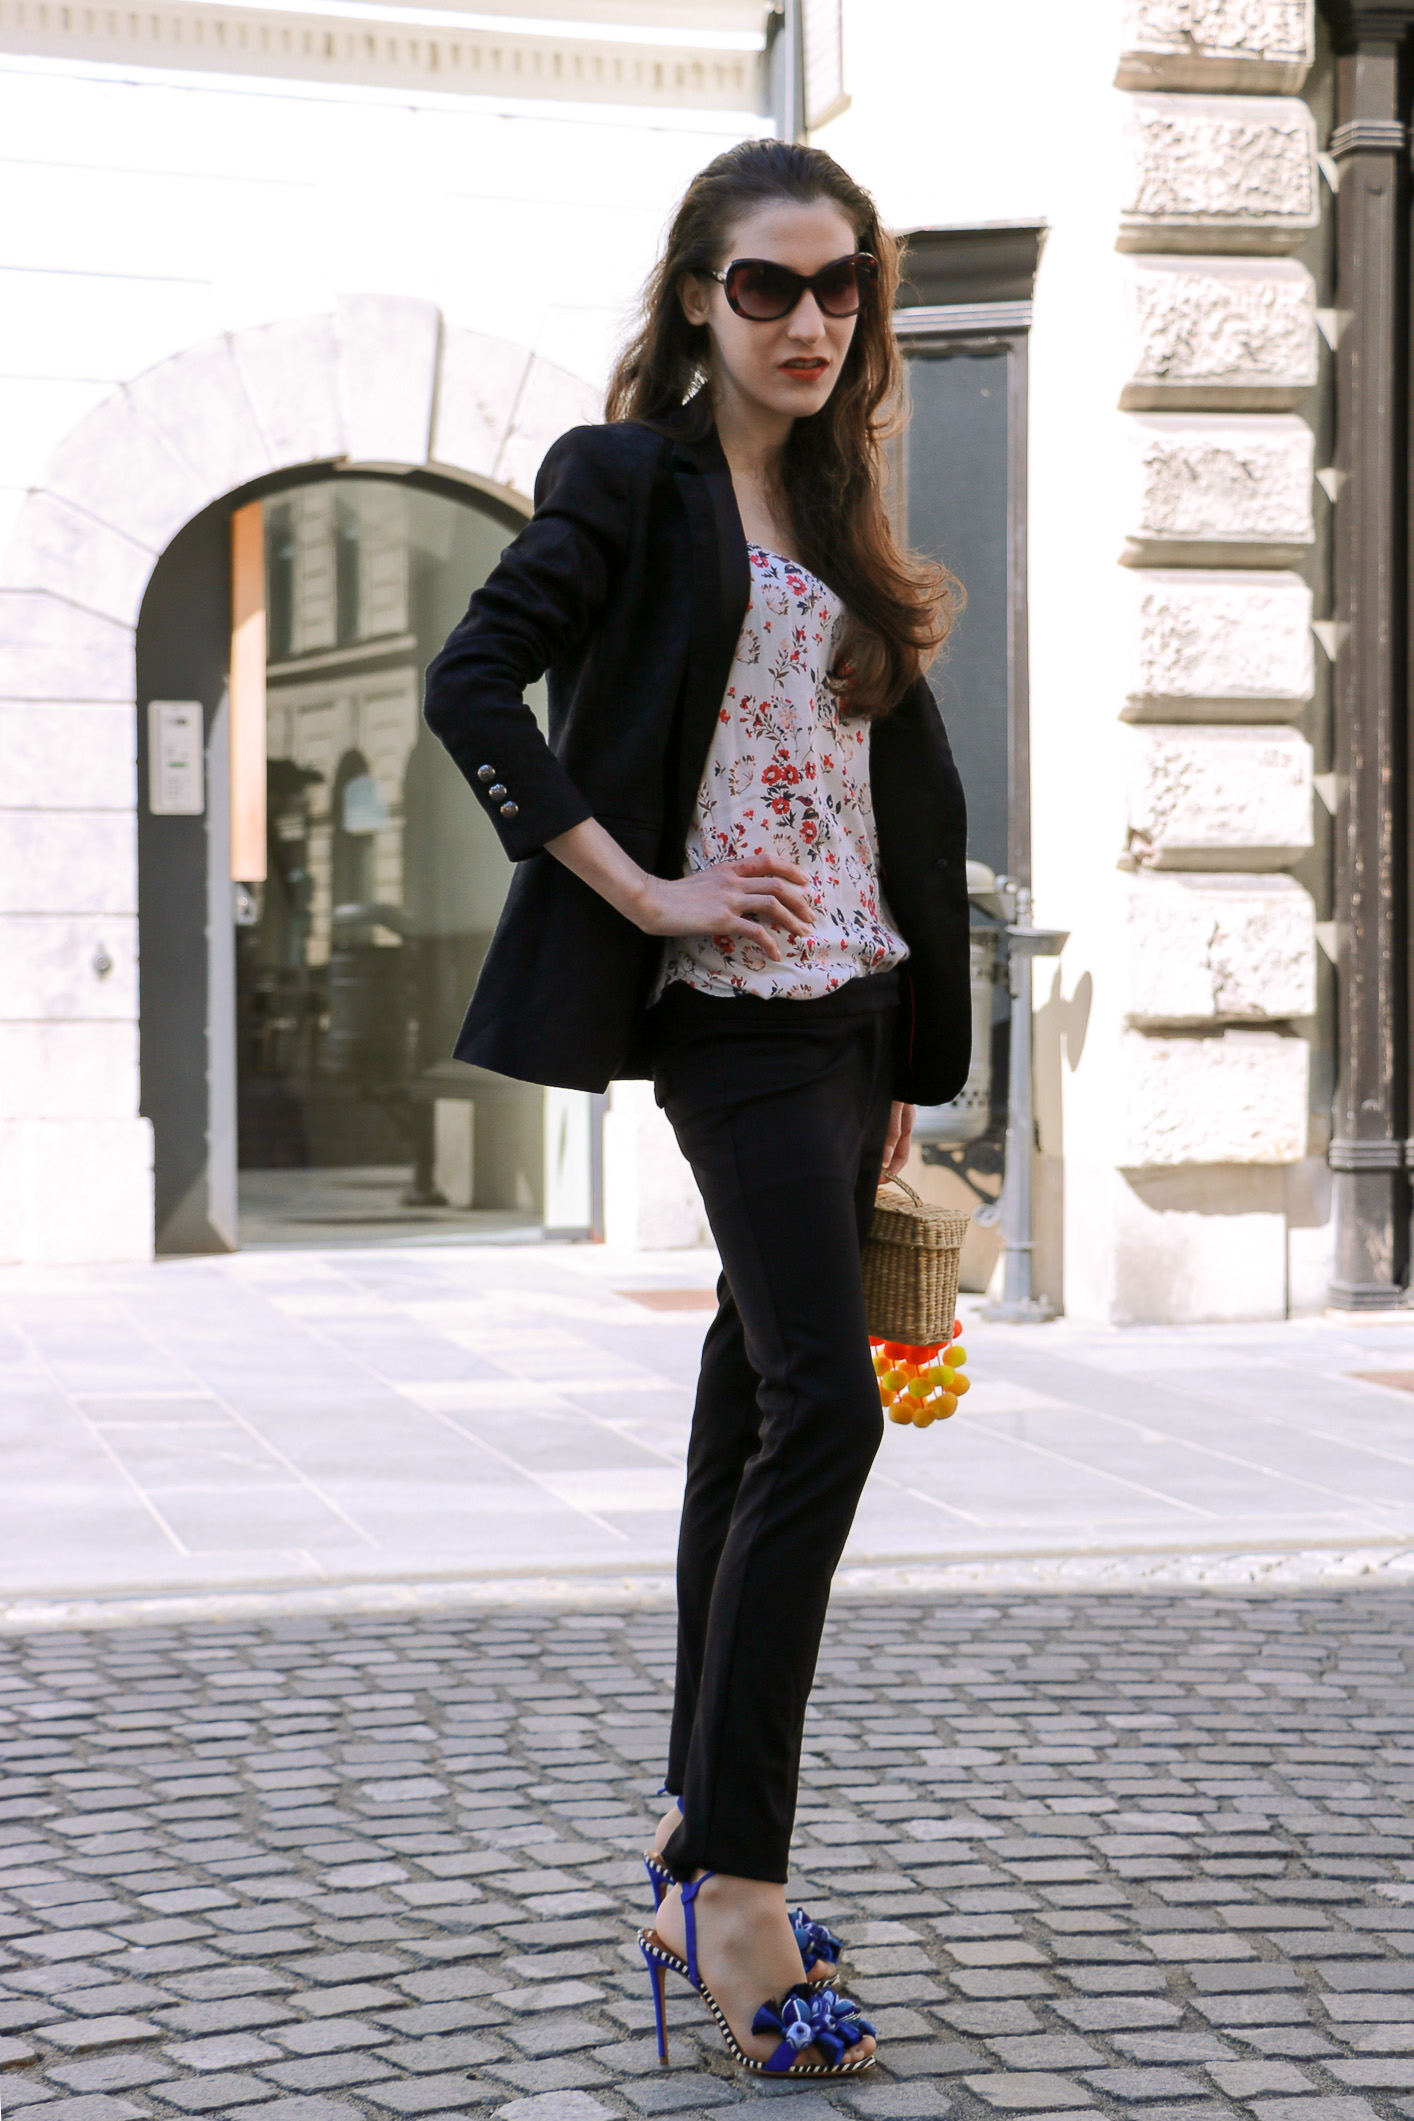 Fashion blogger Veronika Lipar of Brunette From Wall Street sharing fashionable business casual black outfit